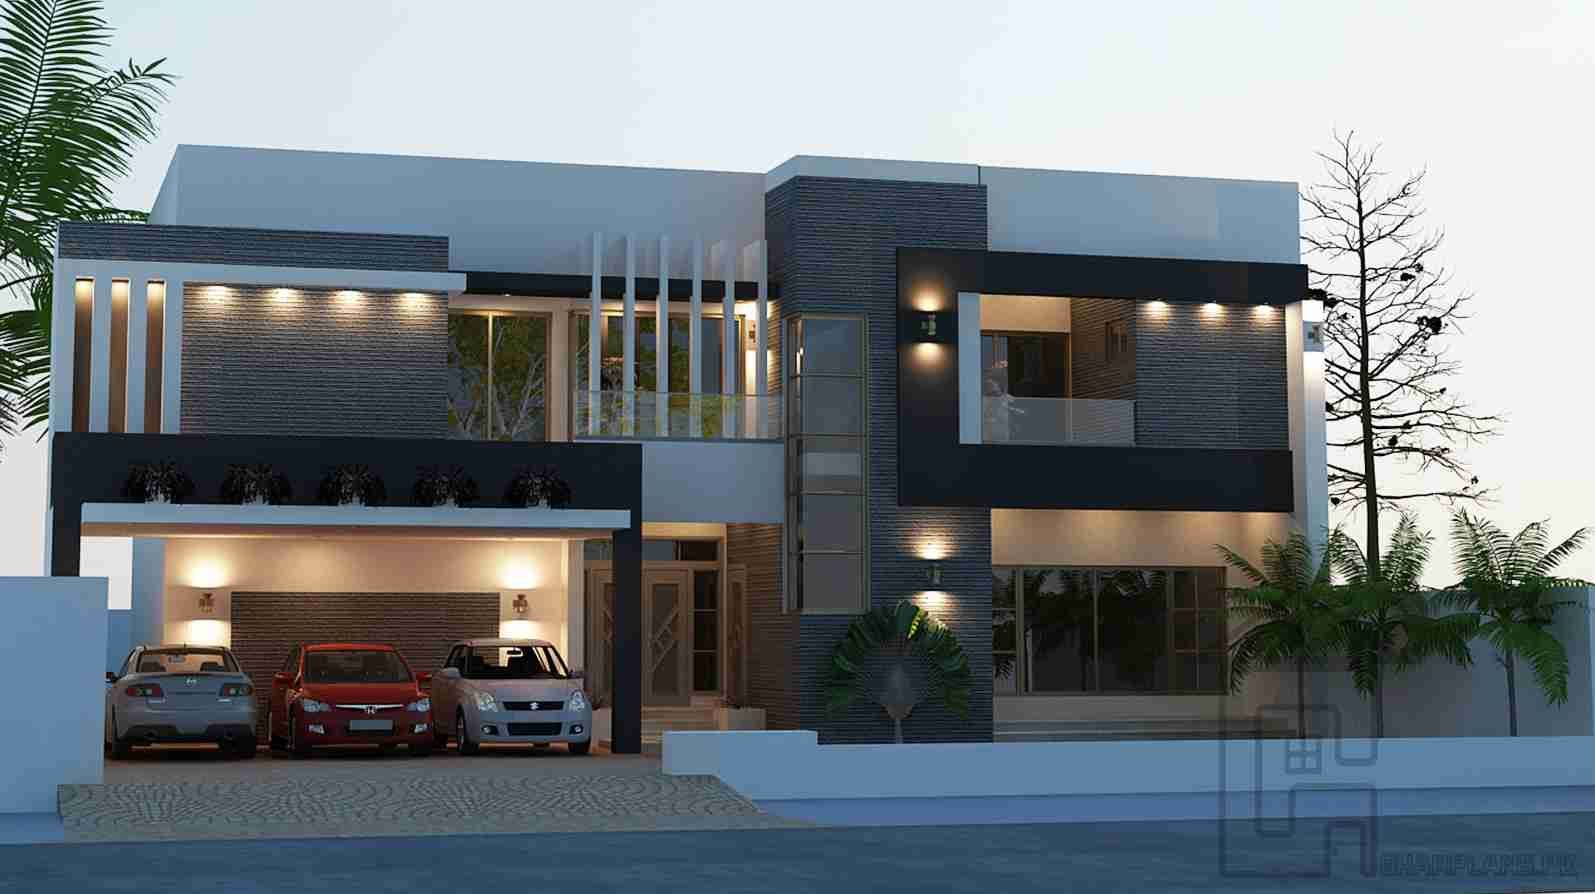 Front Elevation Designer In Bhopal : Image result for front elevation of four storey building